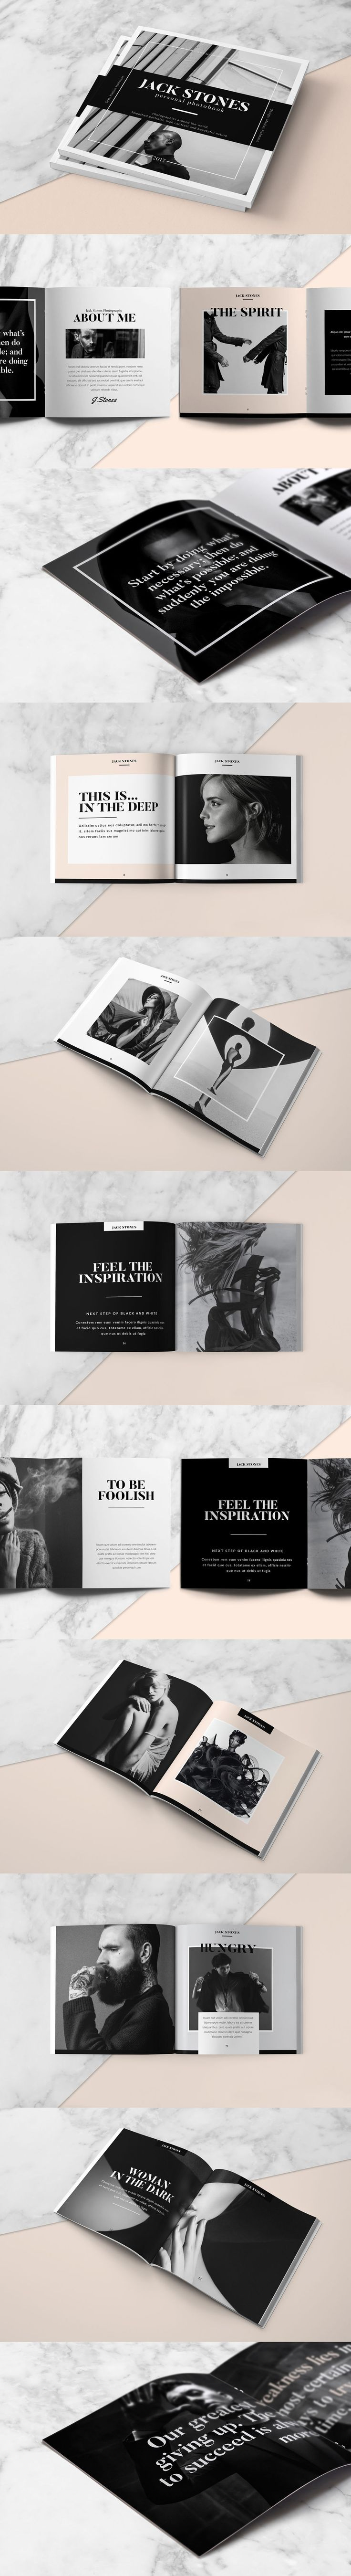 Square Portfolio Book Brochure Template INDD                                                                                                                                                                                 More